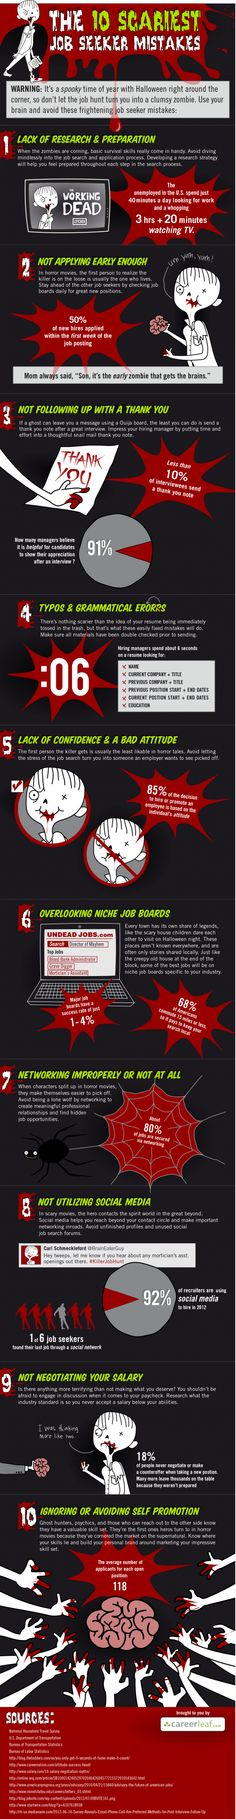 Forget ghouls, goblins, and ghosts—job searching can be frightfully scary! Luckily we have this terrifying top ten list from Careerleaf, which details the 10 Scariest Job Seeker Mistakes and how to avoid them. Cv Advice, Career Advice, Career Search, Job Search Tips, Find A Job, Get The Job, Social Work, Social Media, Interview Skills